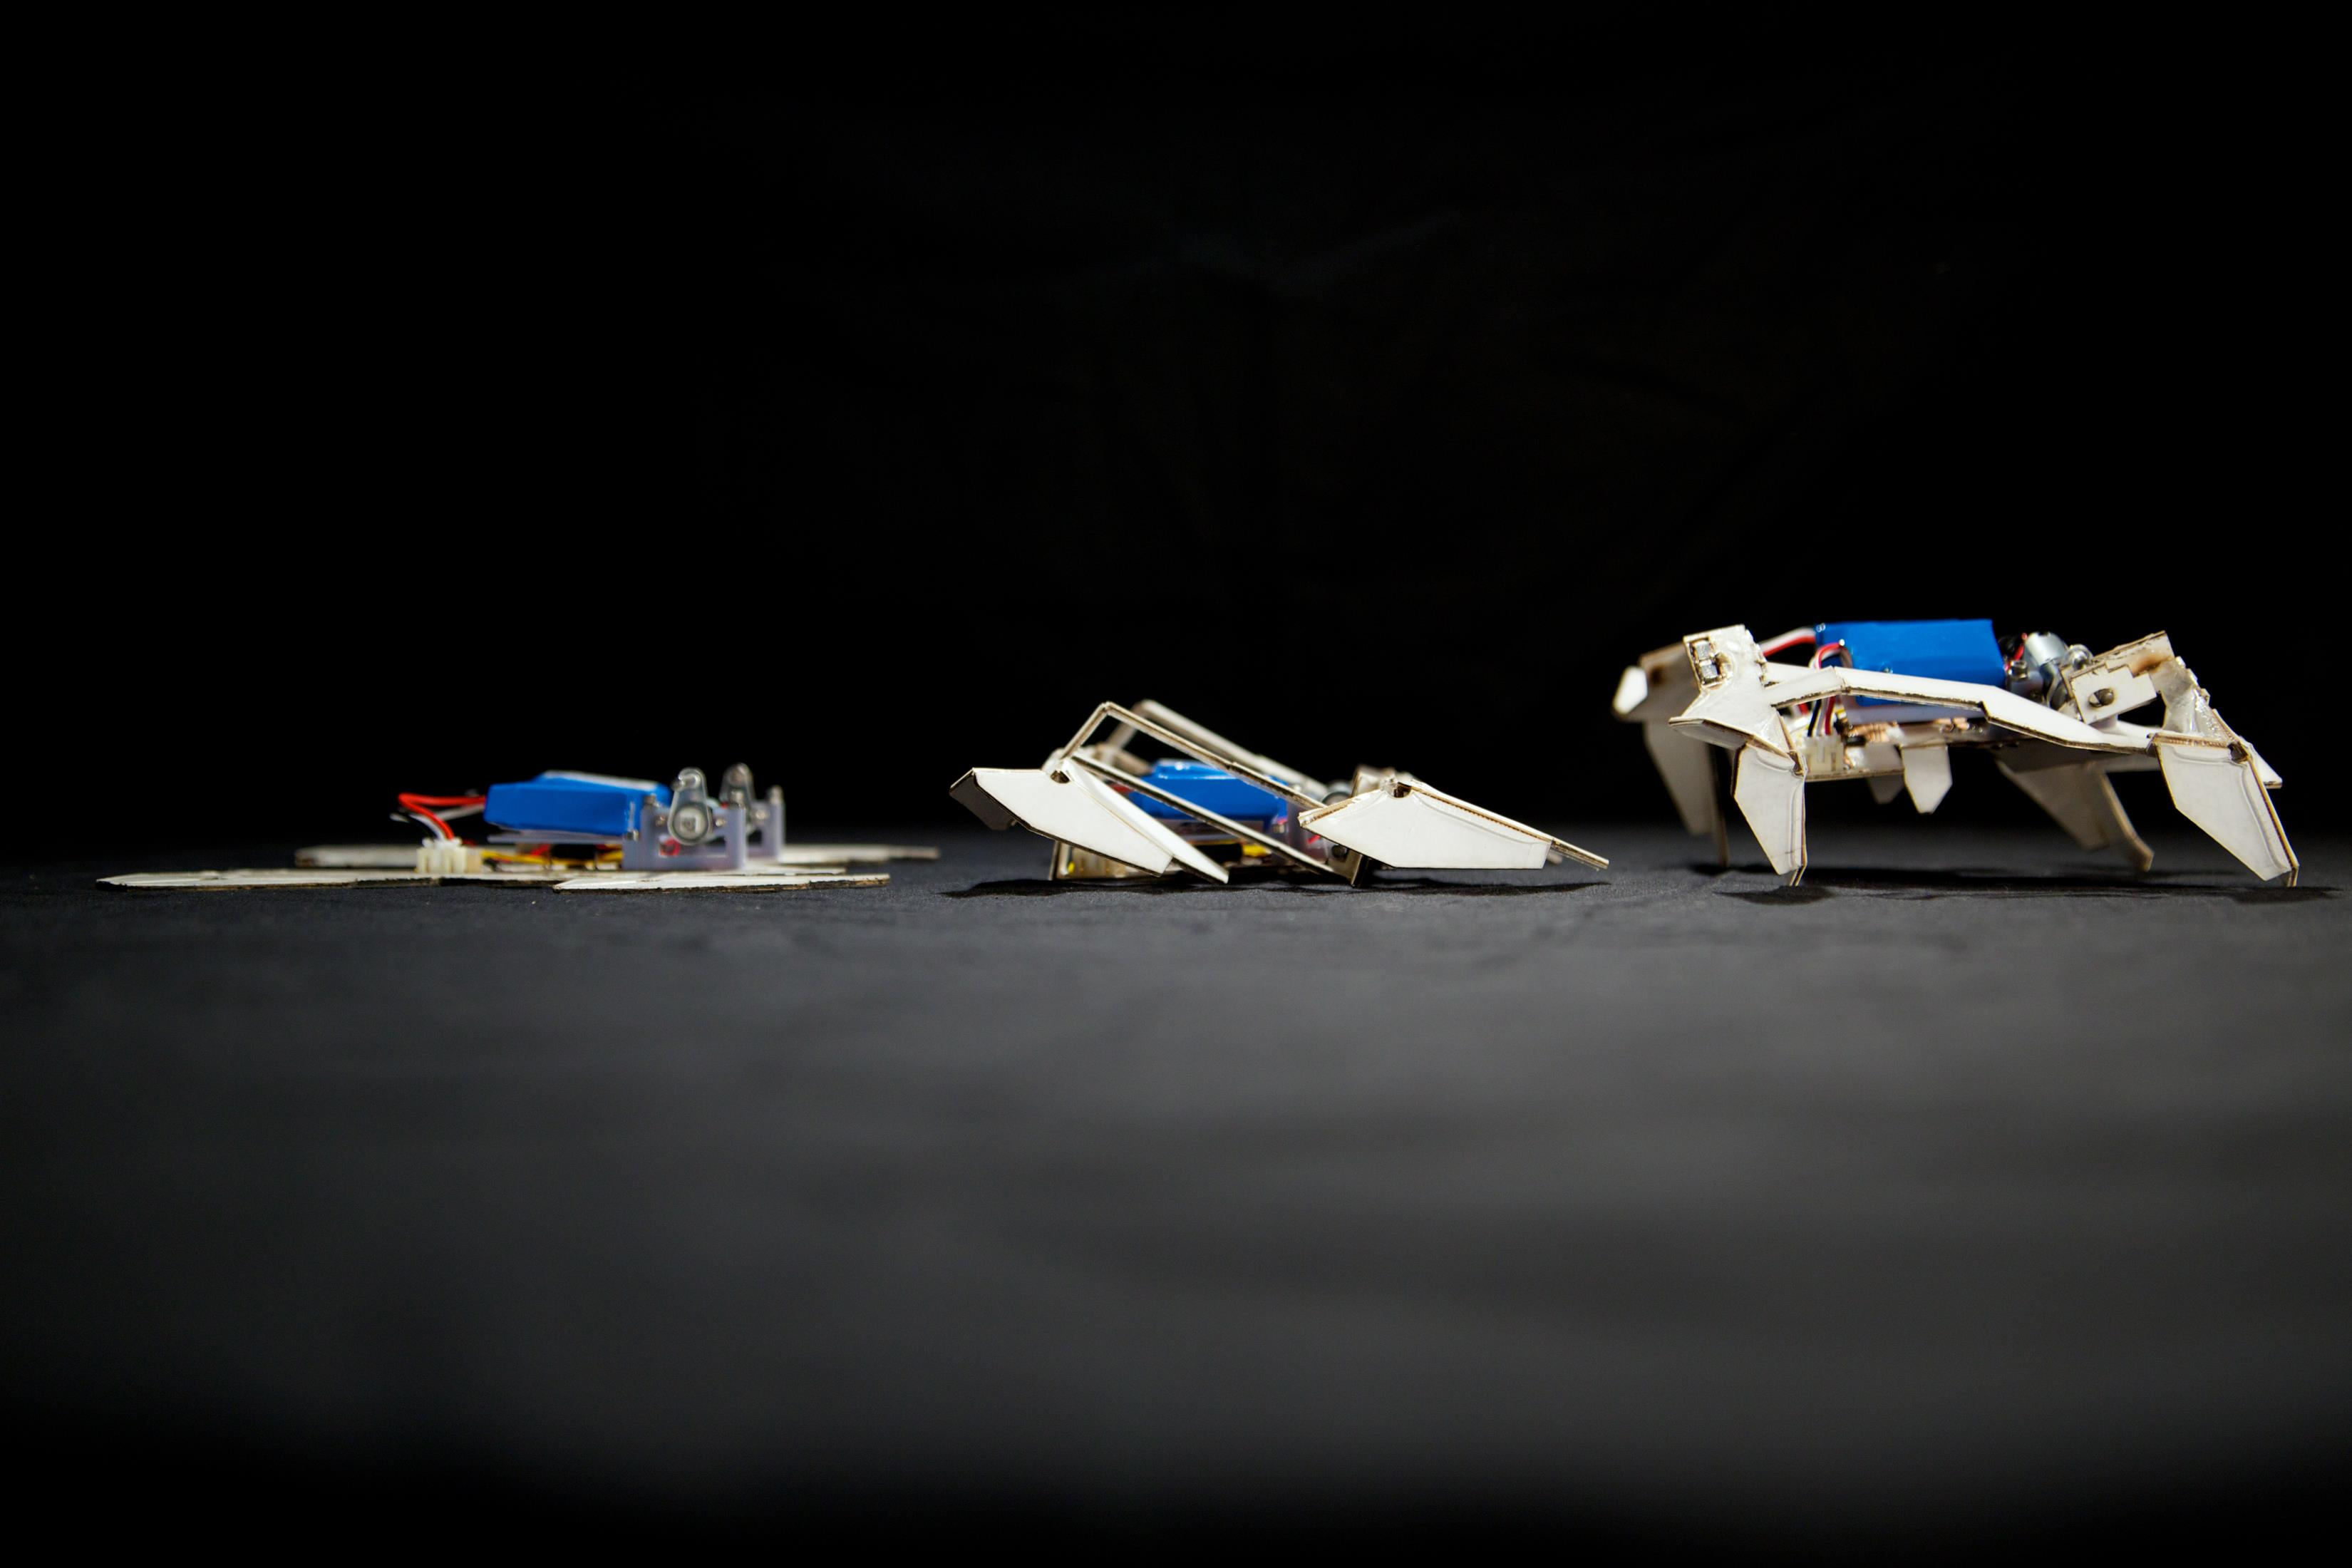 Image: Origami robot